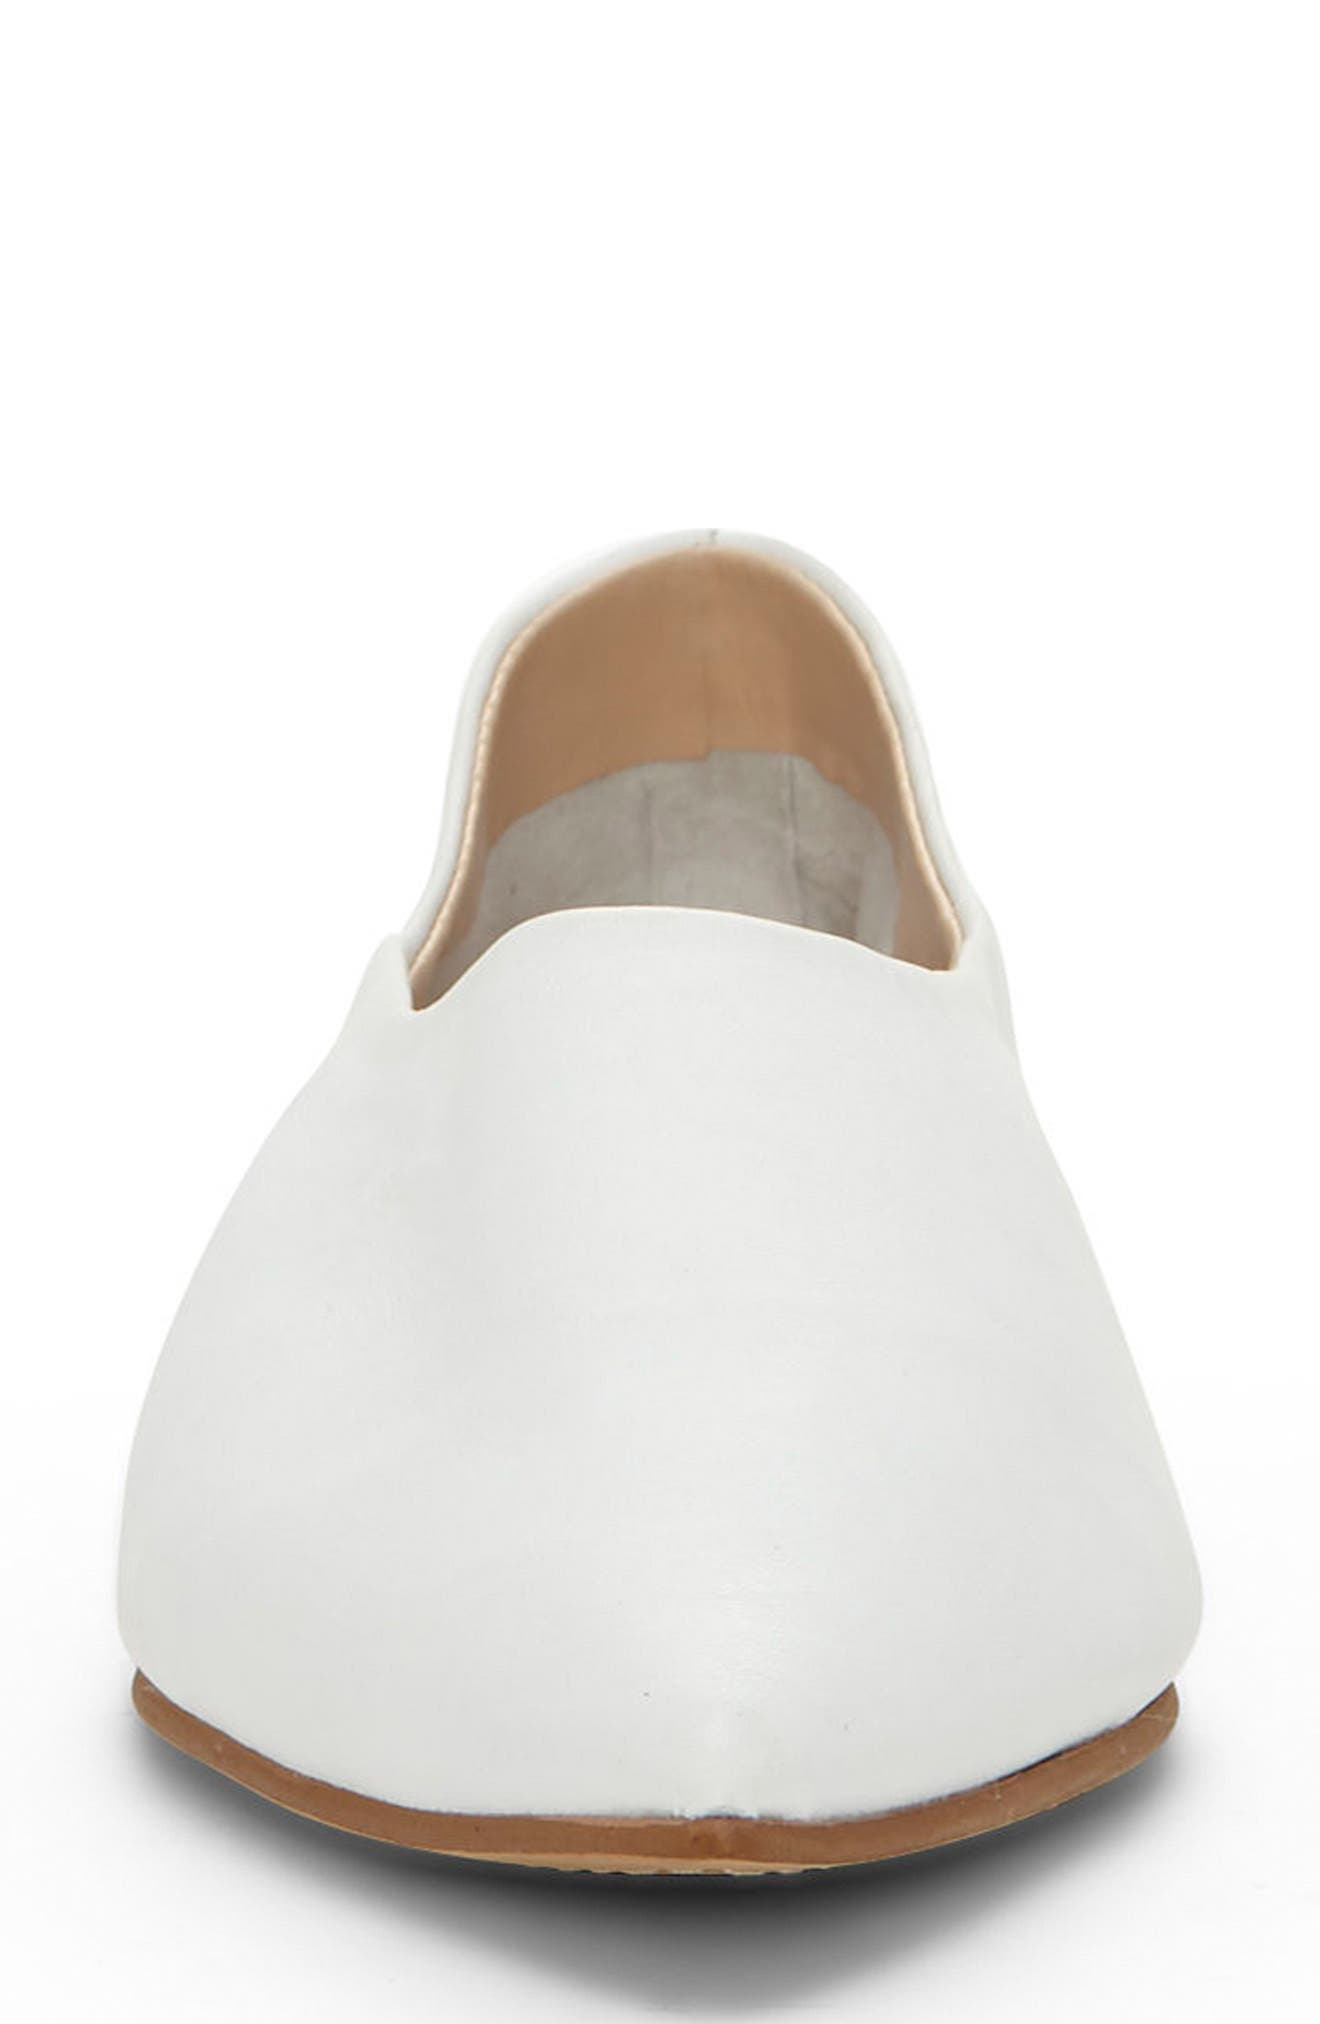 Stanta Pointy Toe Flat,                             Alternate thumbnail 4, color,                             Pure White Leather